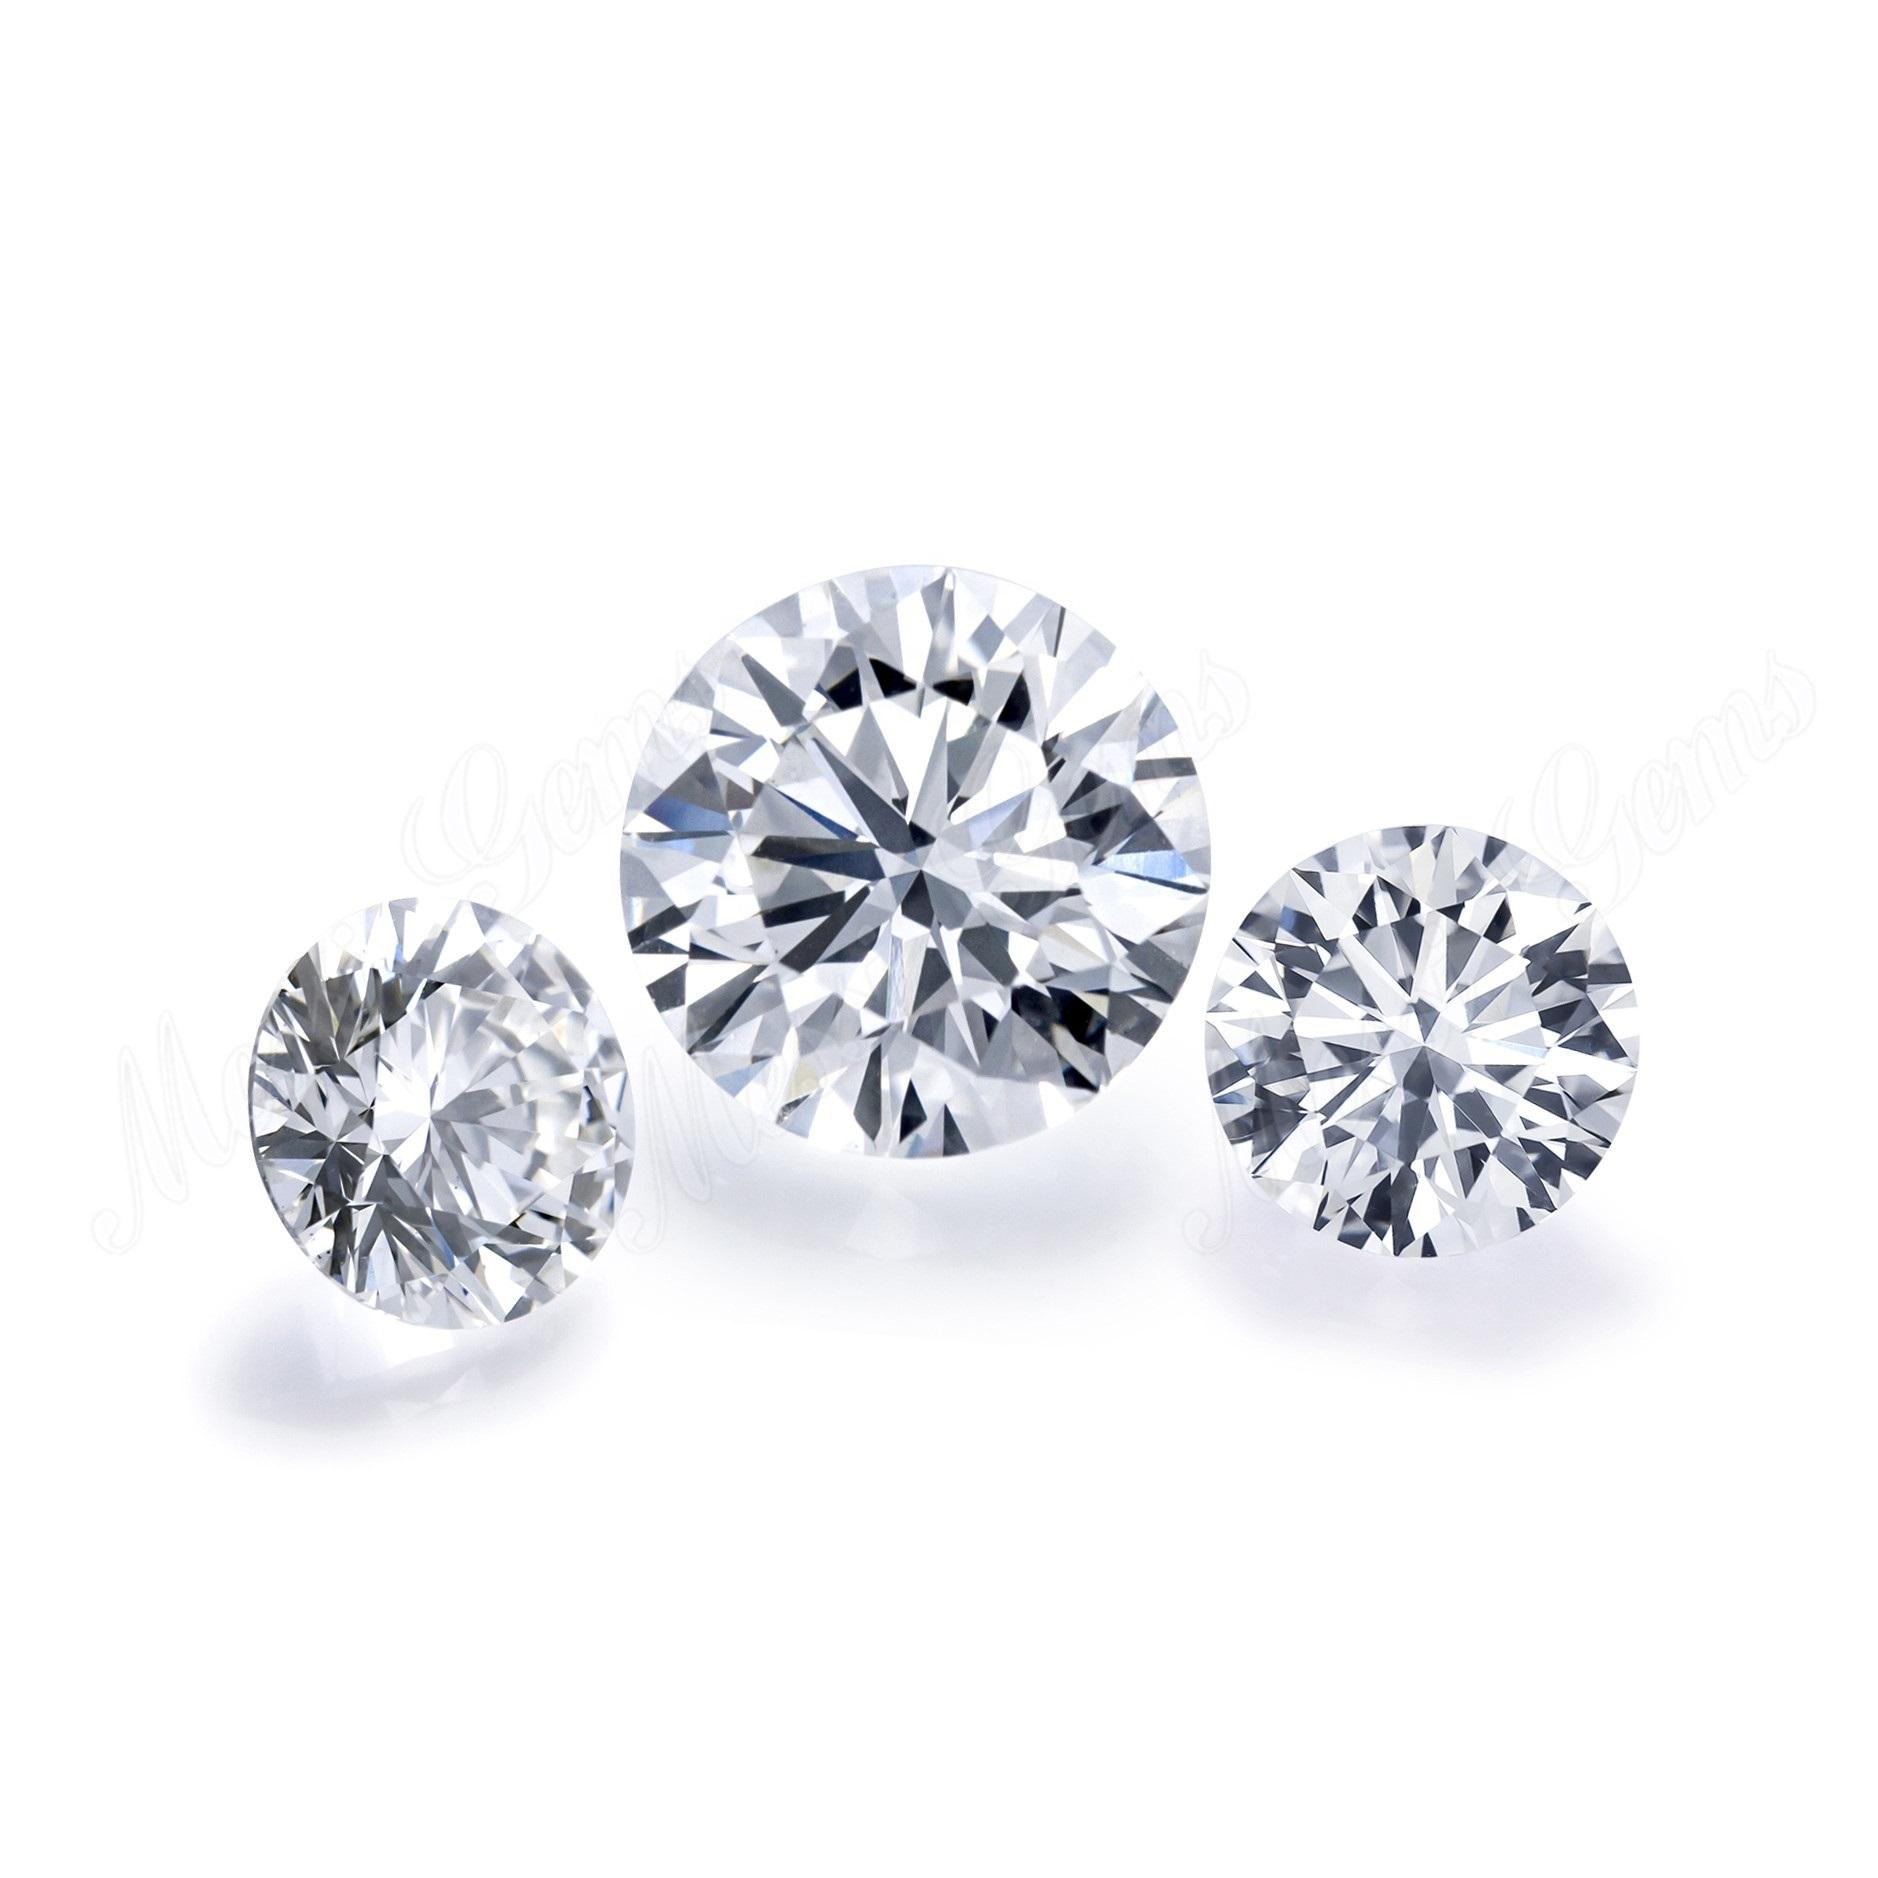 0.23 Cent Indian Natural G-VS2 Color/Clarity GIA/IGI Certified Diamond for Gold/Silver/Gemstone/Crystal Jewelry